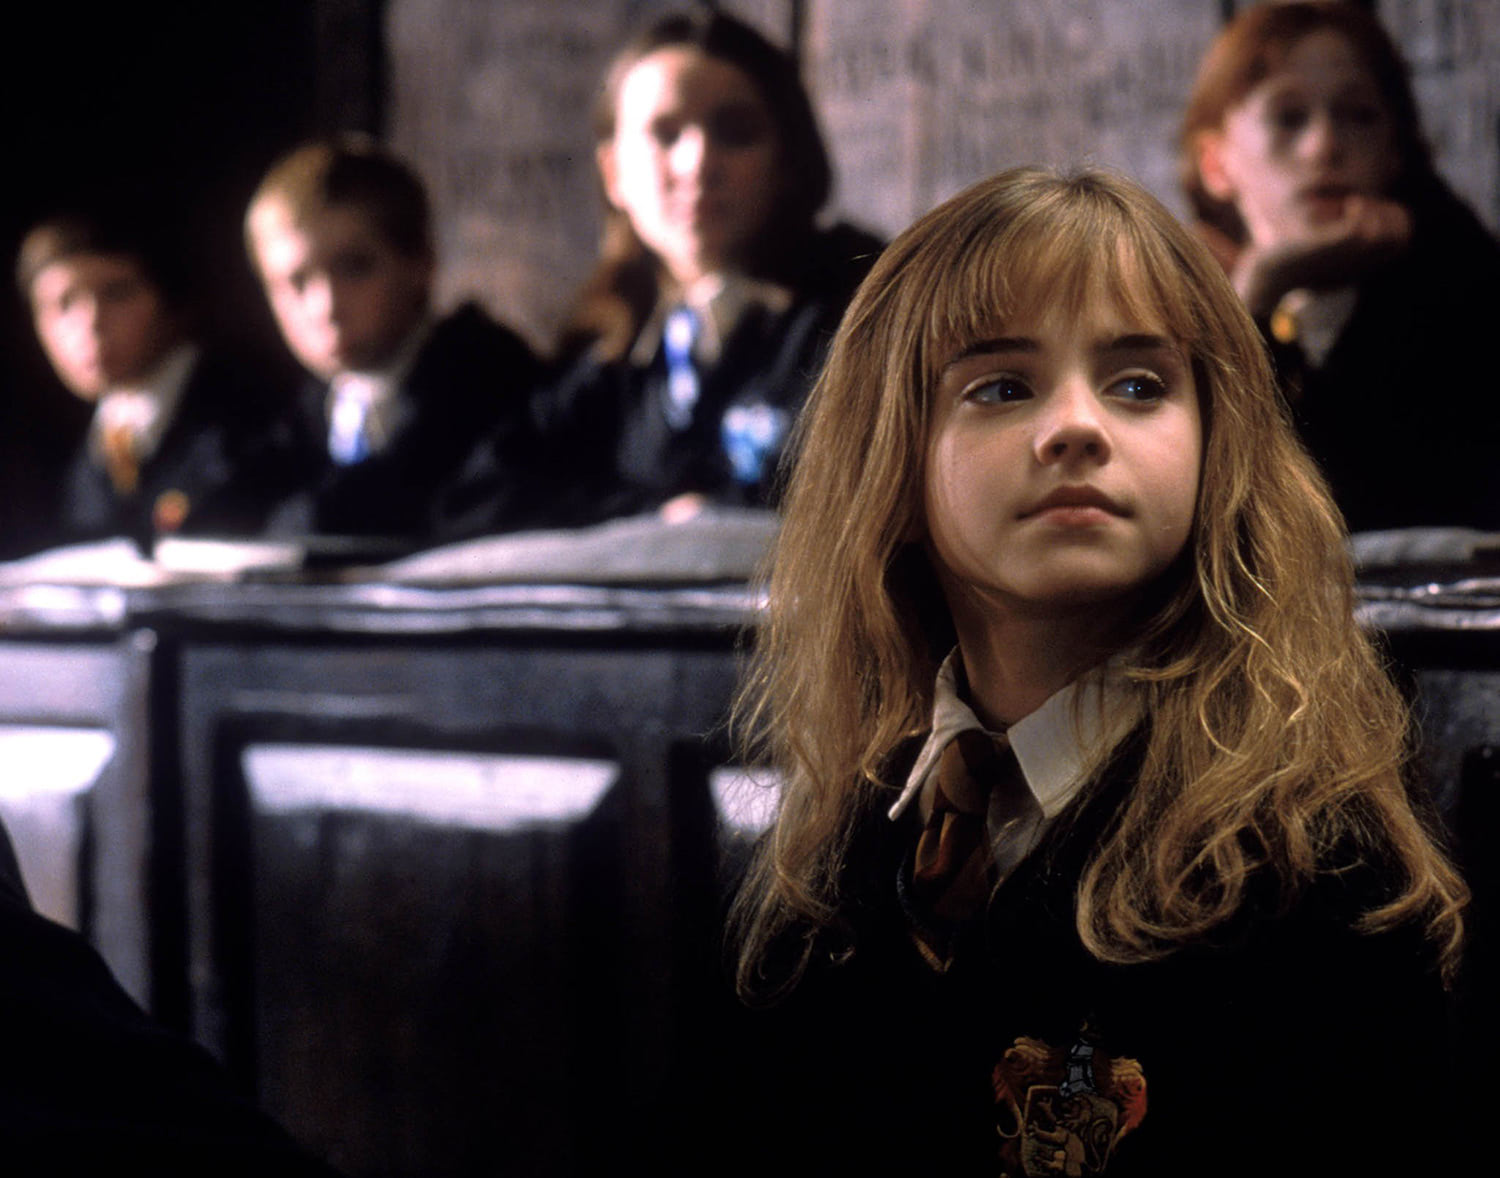 Hermione in Charms class